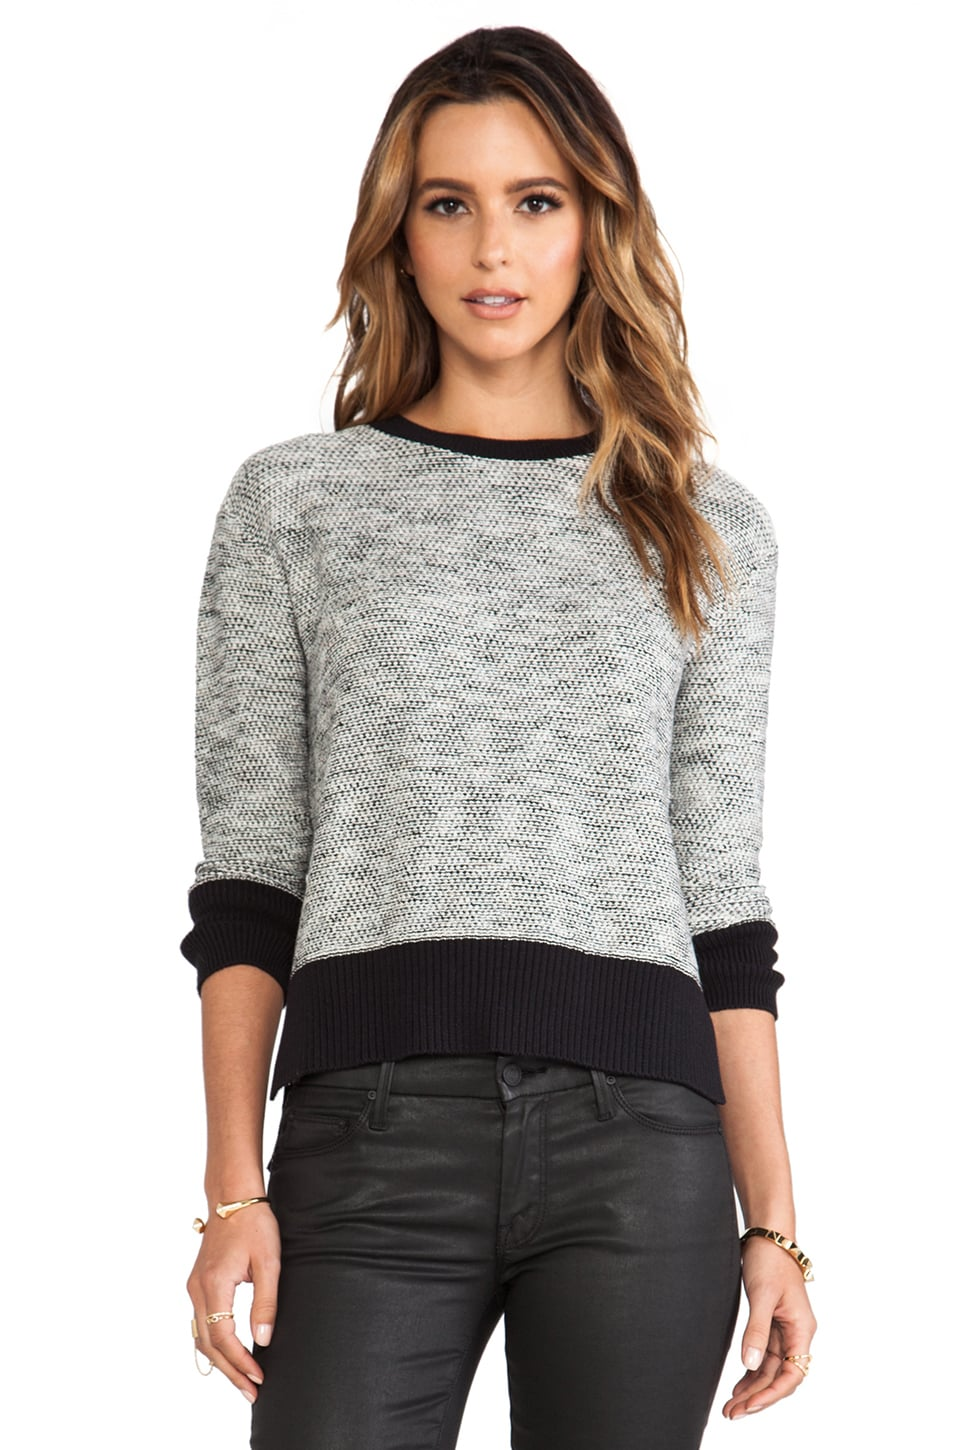 DEREK LAM 10 CROSBY RUNWAY Crew Neck Sweater in Black